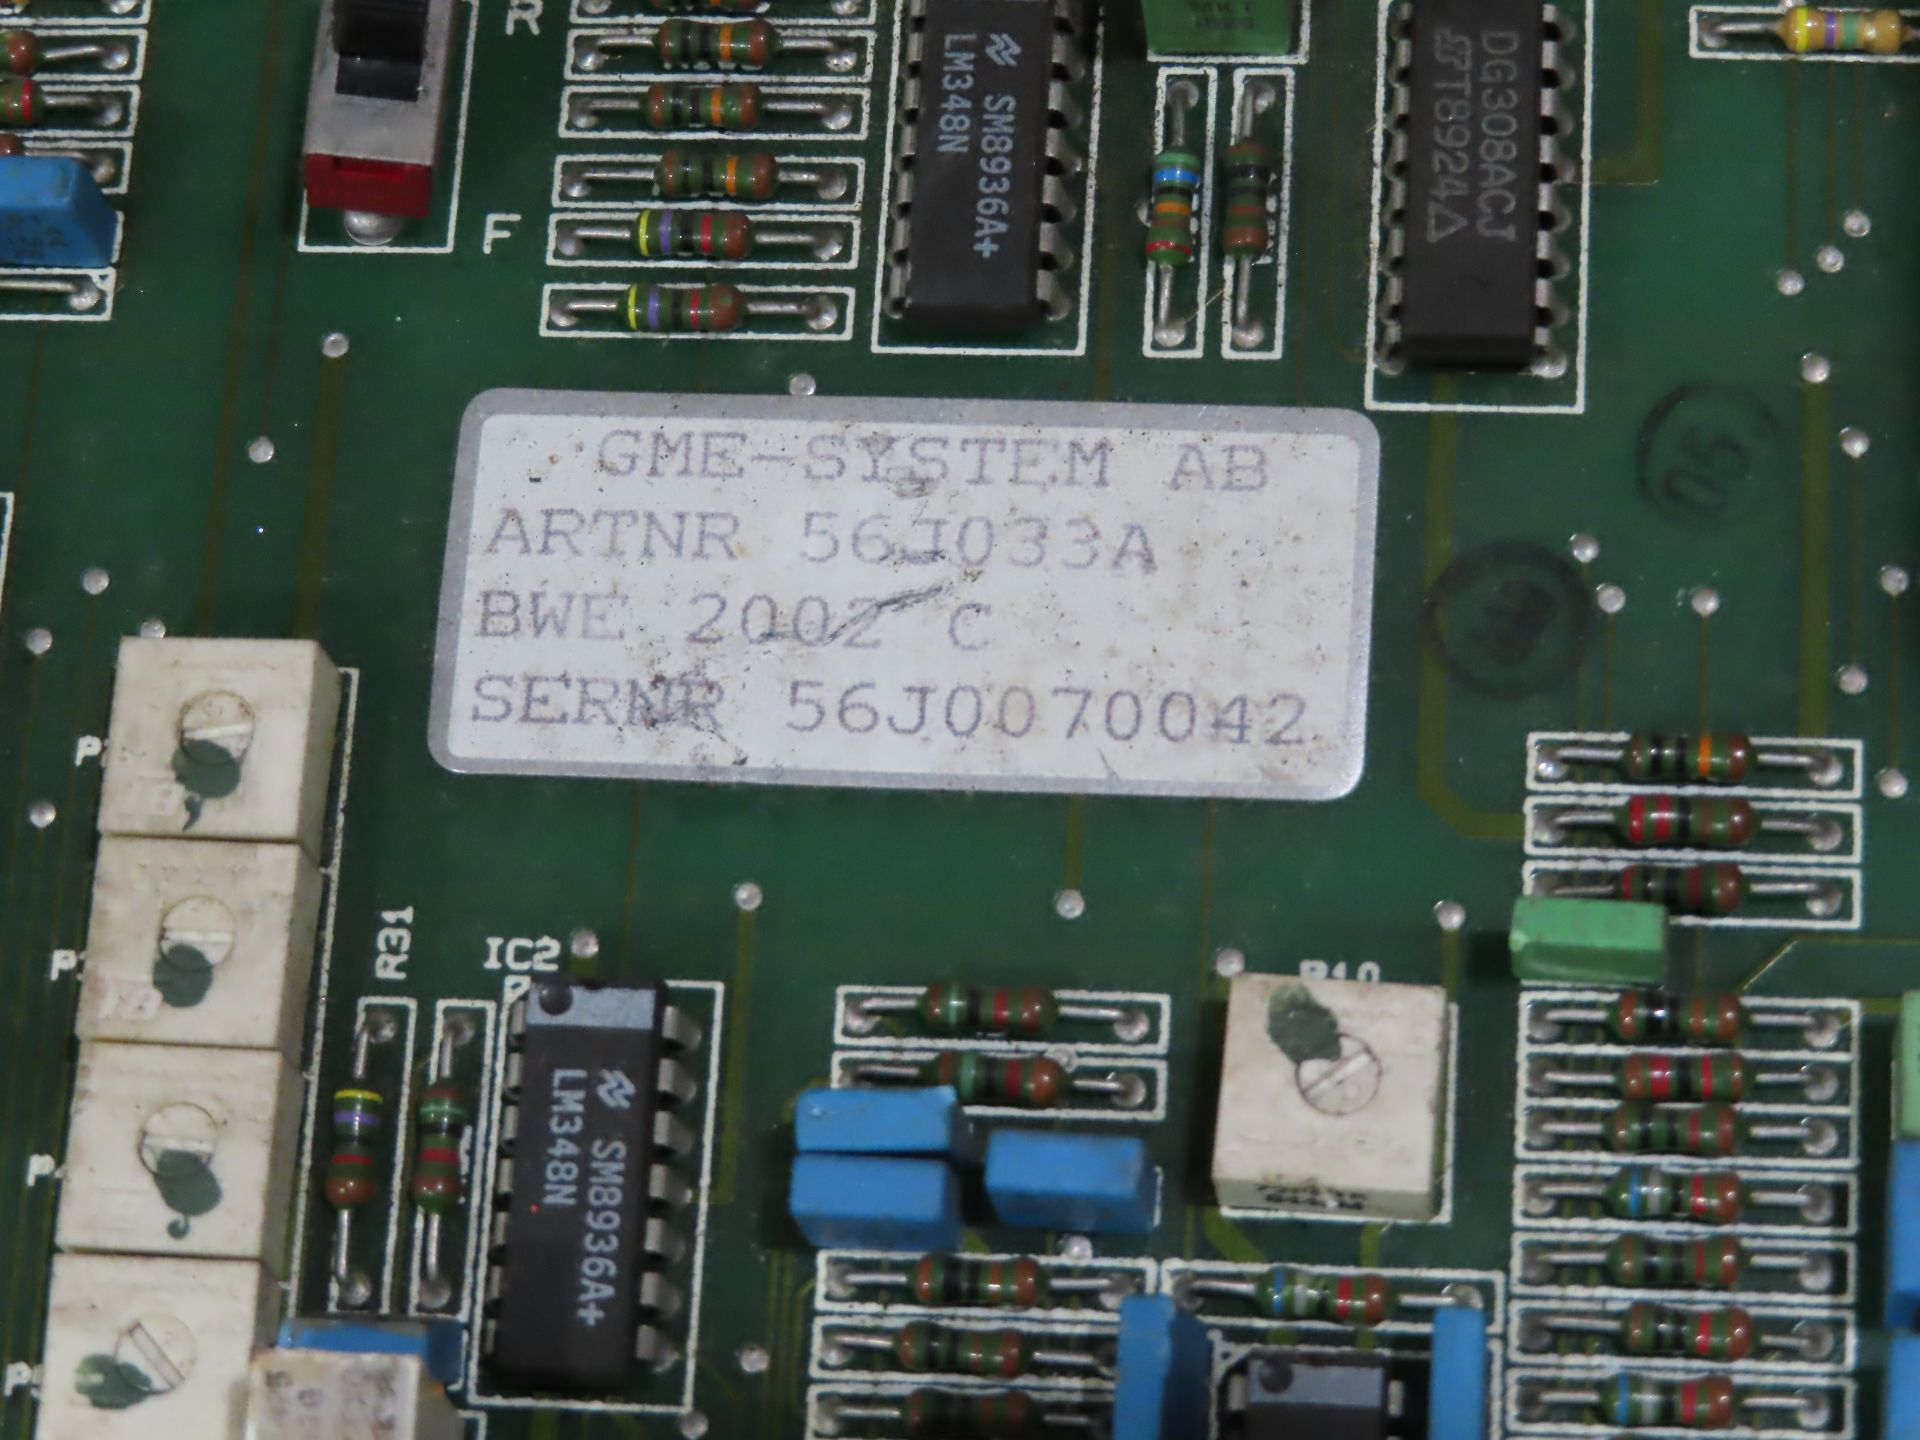 Lot 45 - Qty 3 Altas Copco model 56J033A control boards, as always, with Brolyn LLC auctions, all lots can be